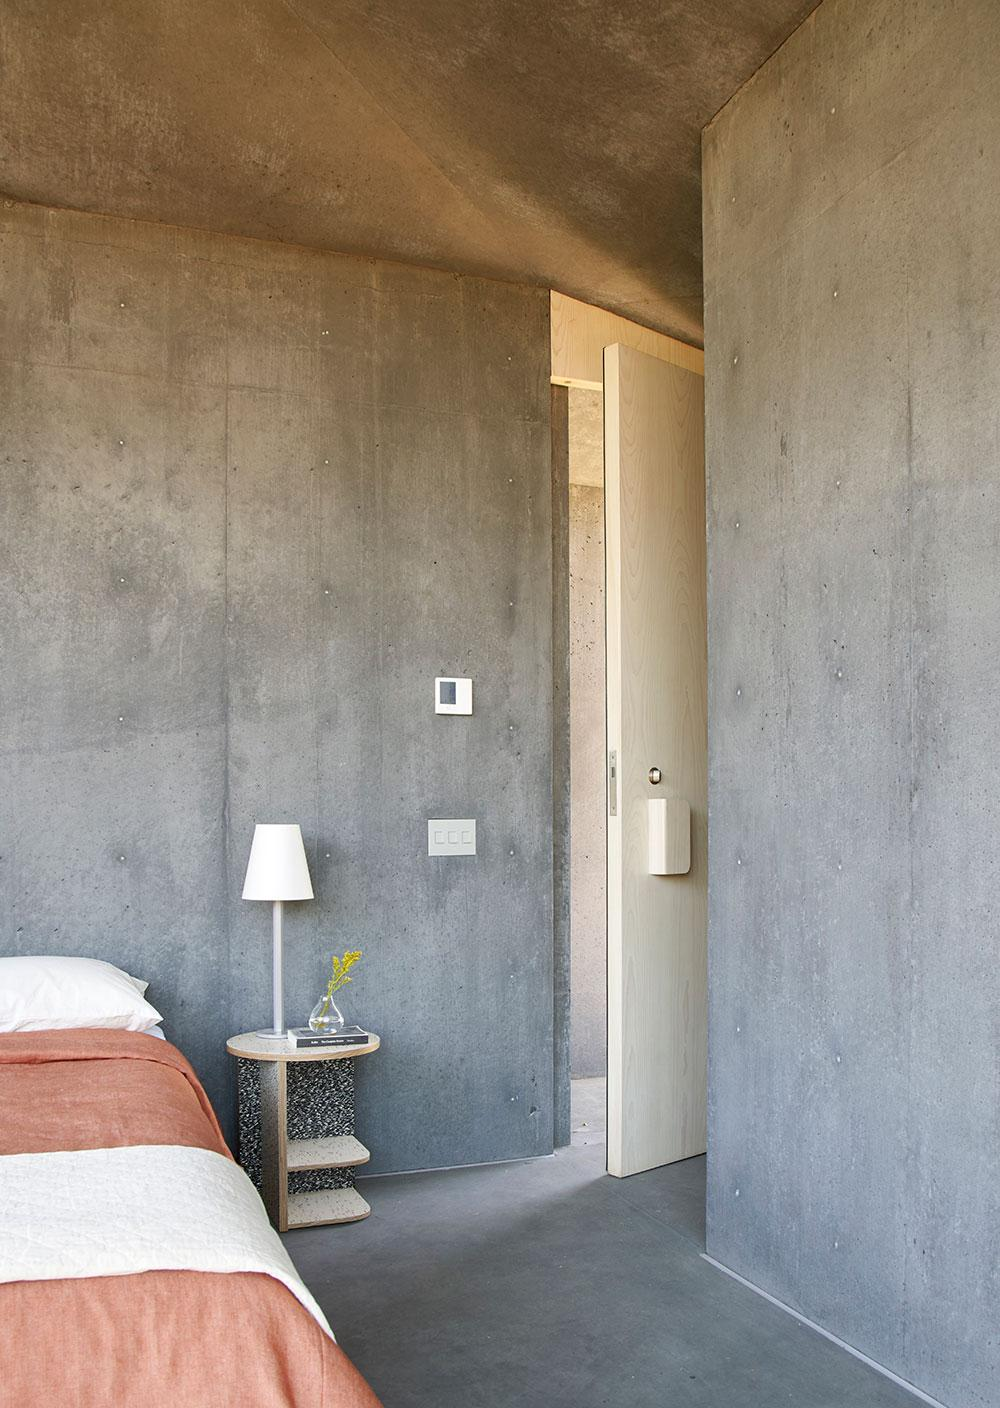 Mork-Ulnes Architects concrete house bedroom